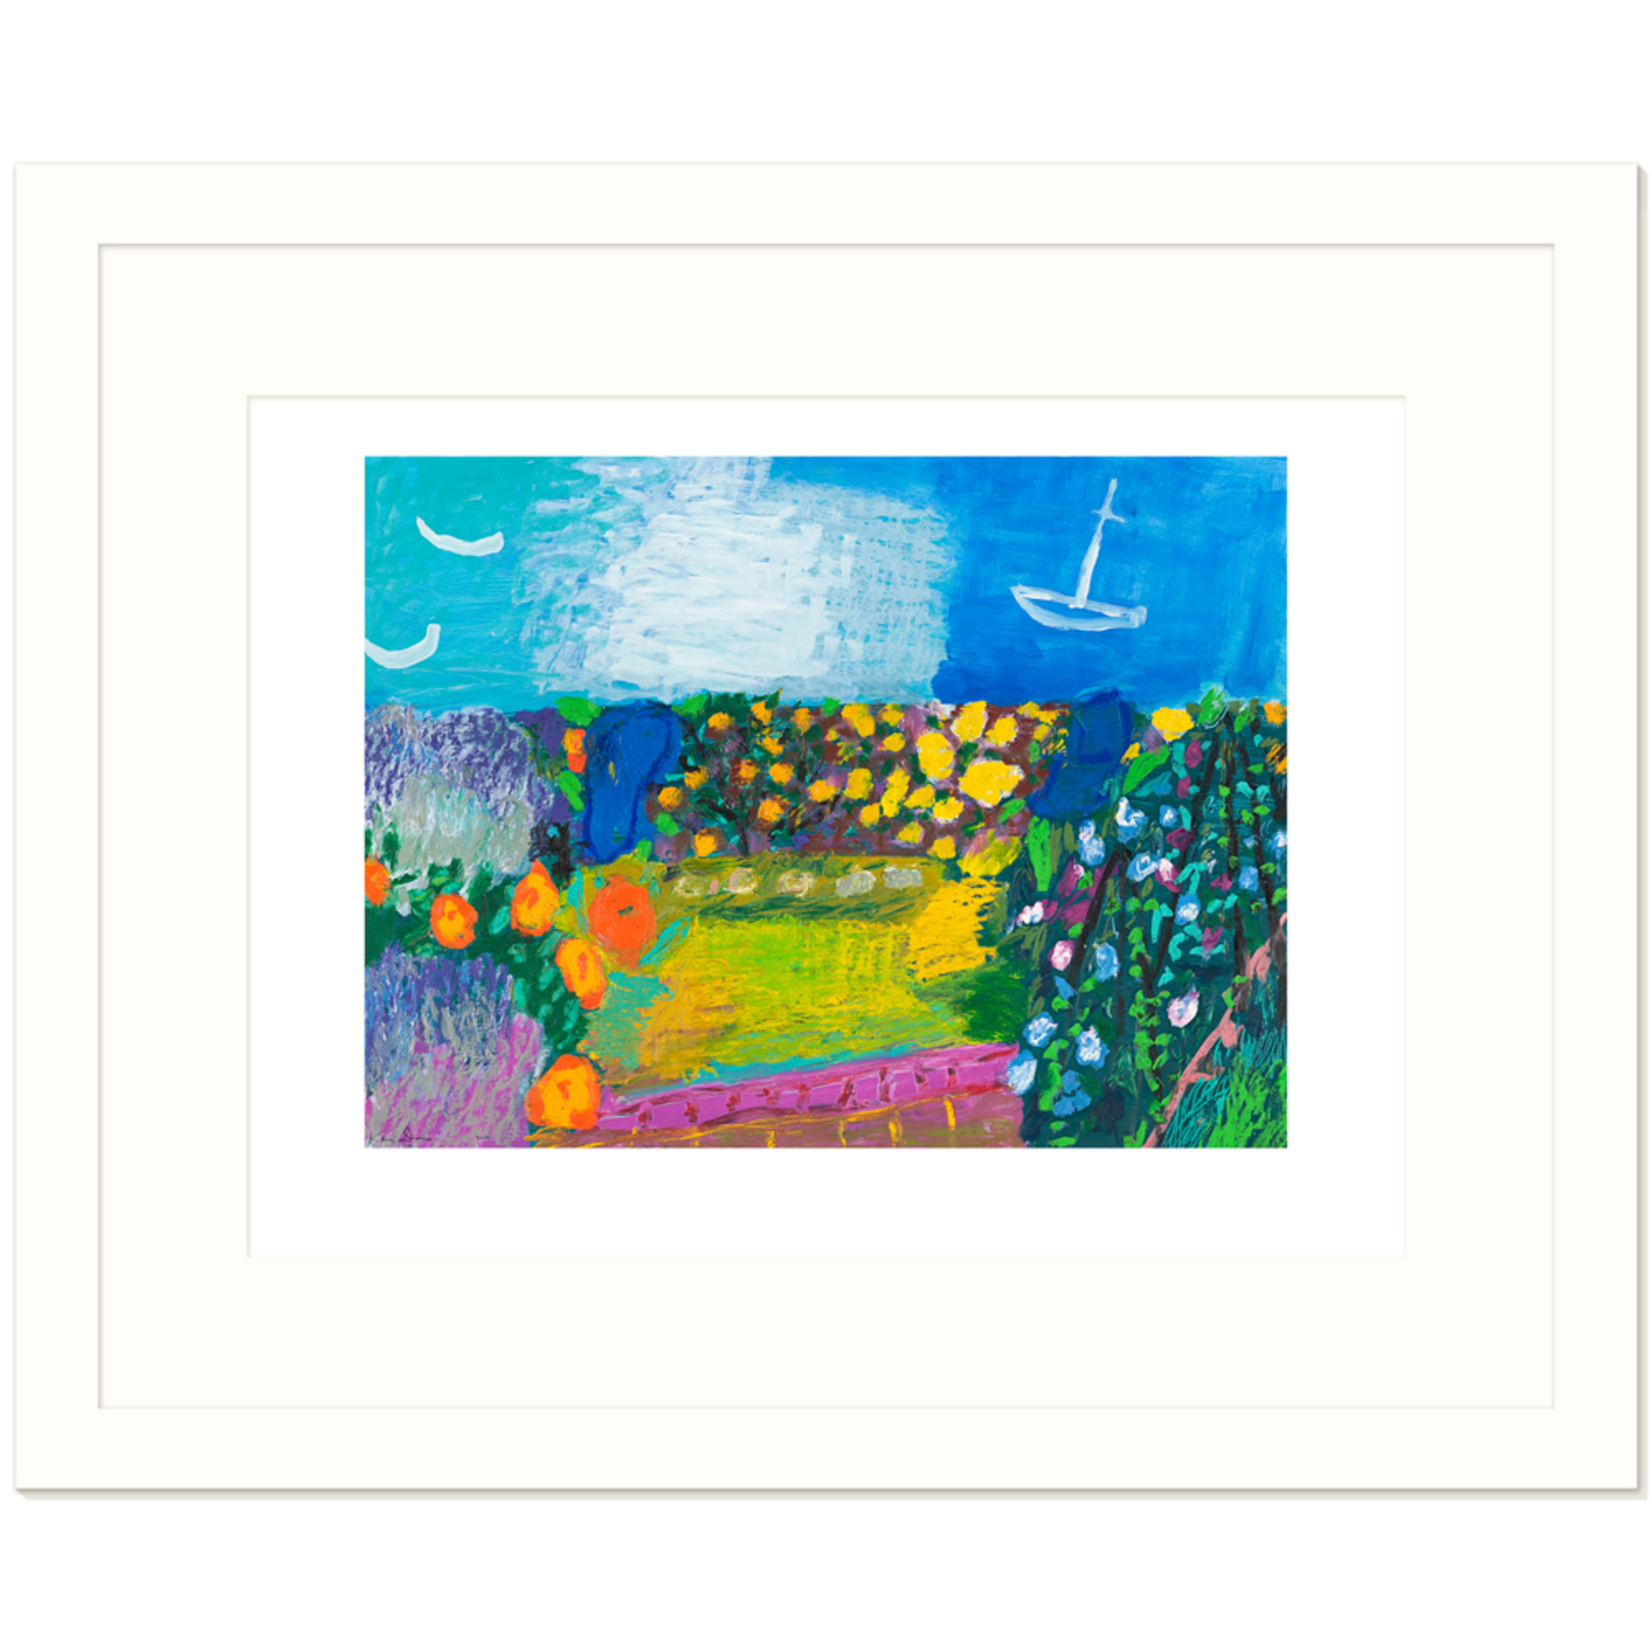 Limited Edition Prints Garden by the sea I, 2010